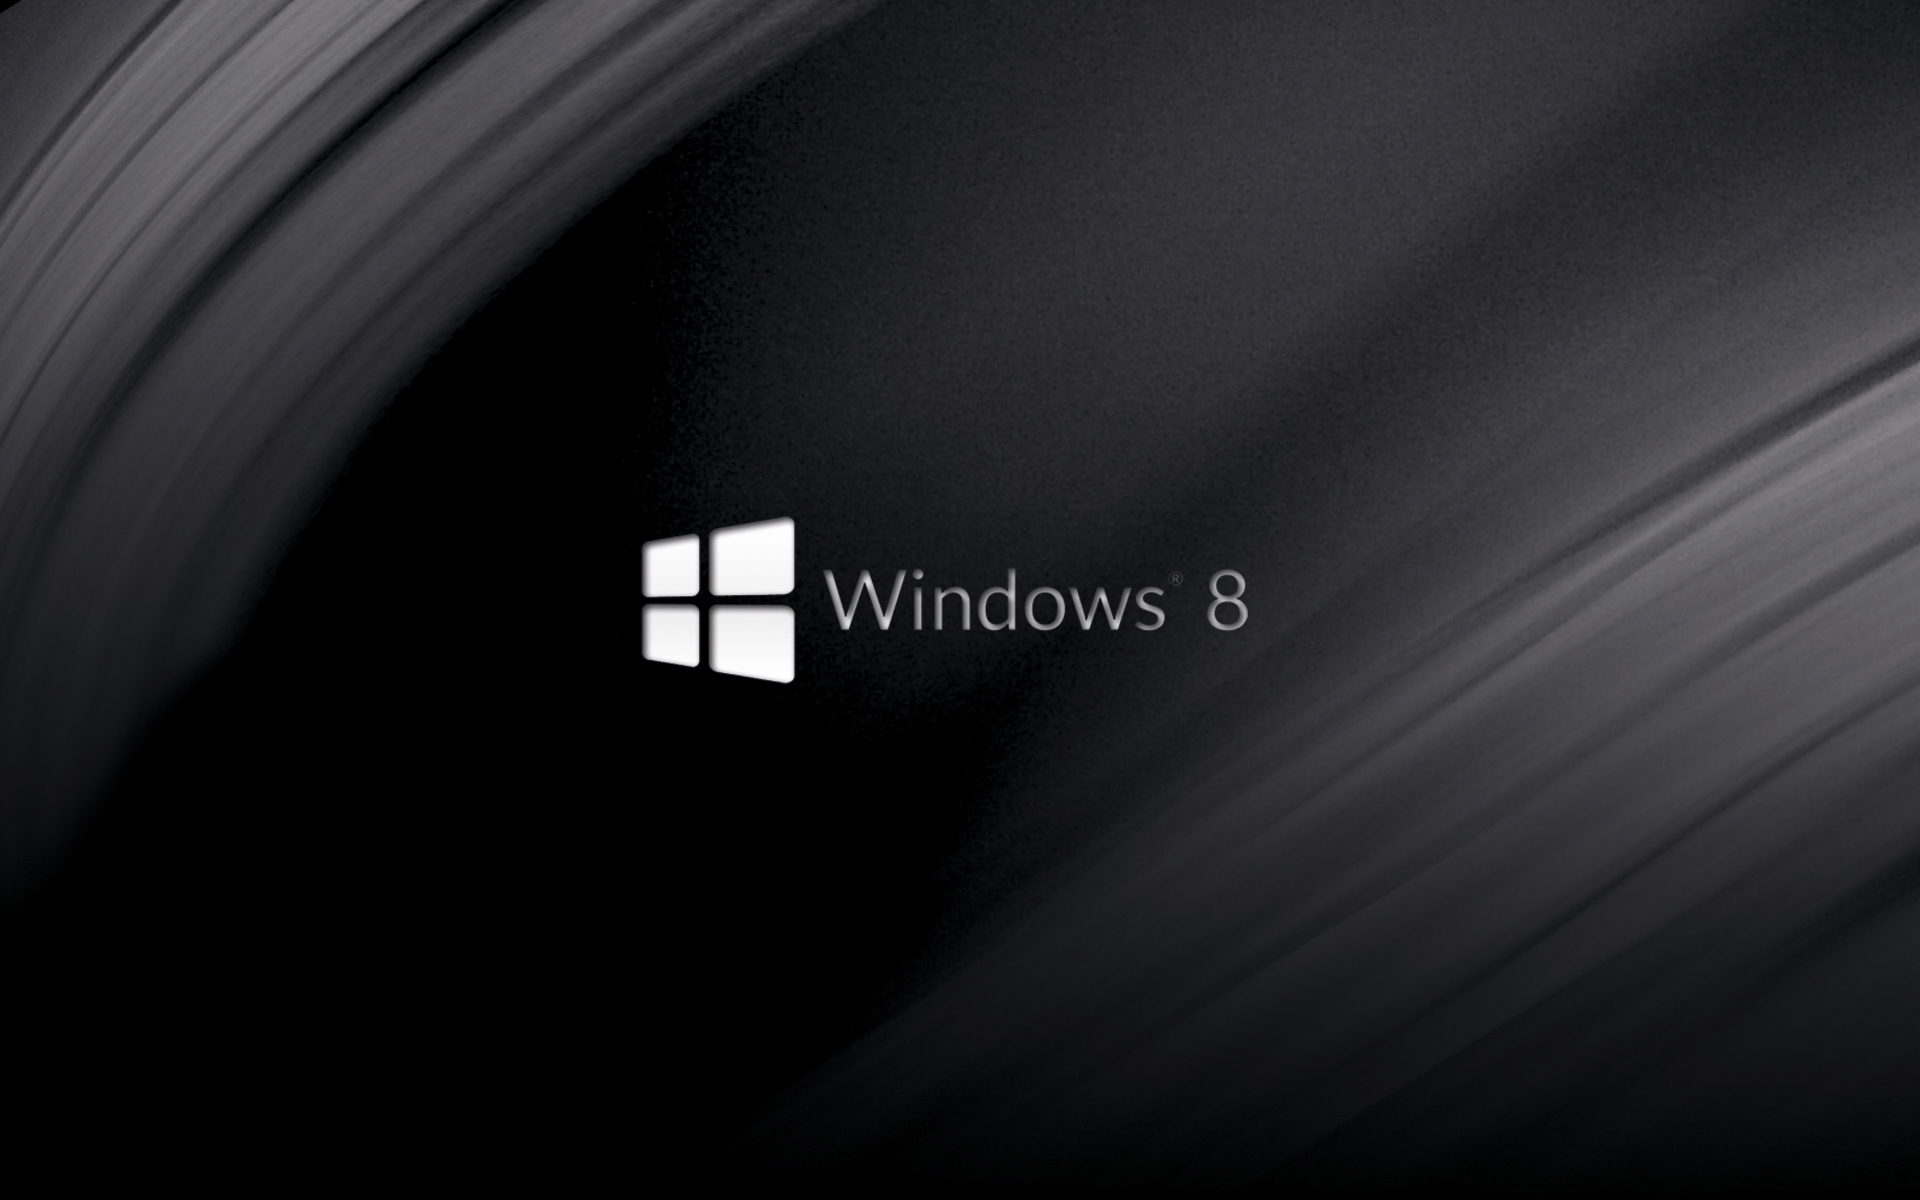 Black windows - Minimal Black Windows 8 Wallpaper By Wingweaver666 On Deviantart